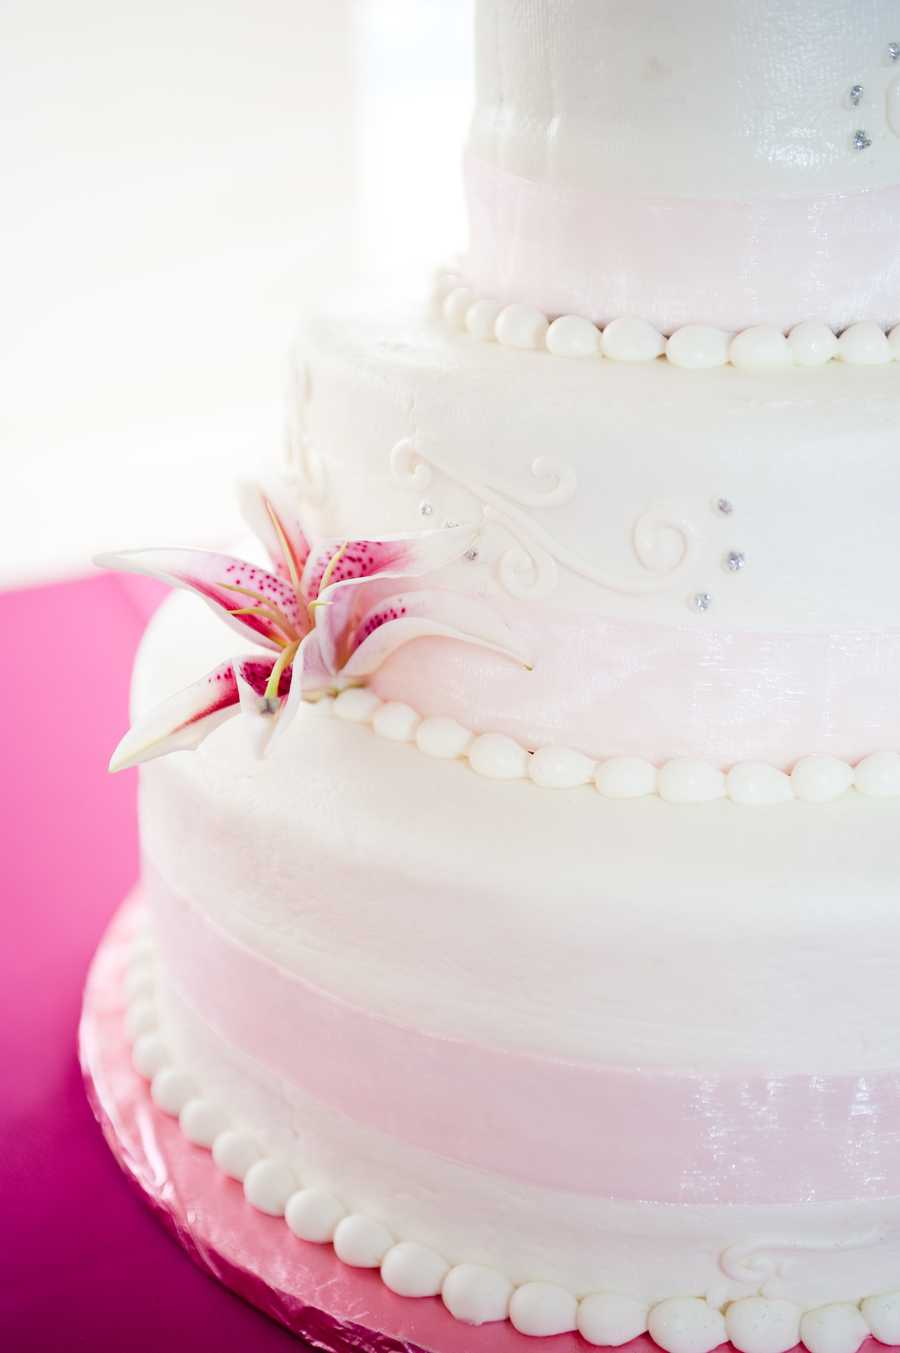 The Valentine's Day Wedding Theme can be shown with beautiful wedding cakes with red, white and pink representing love...